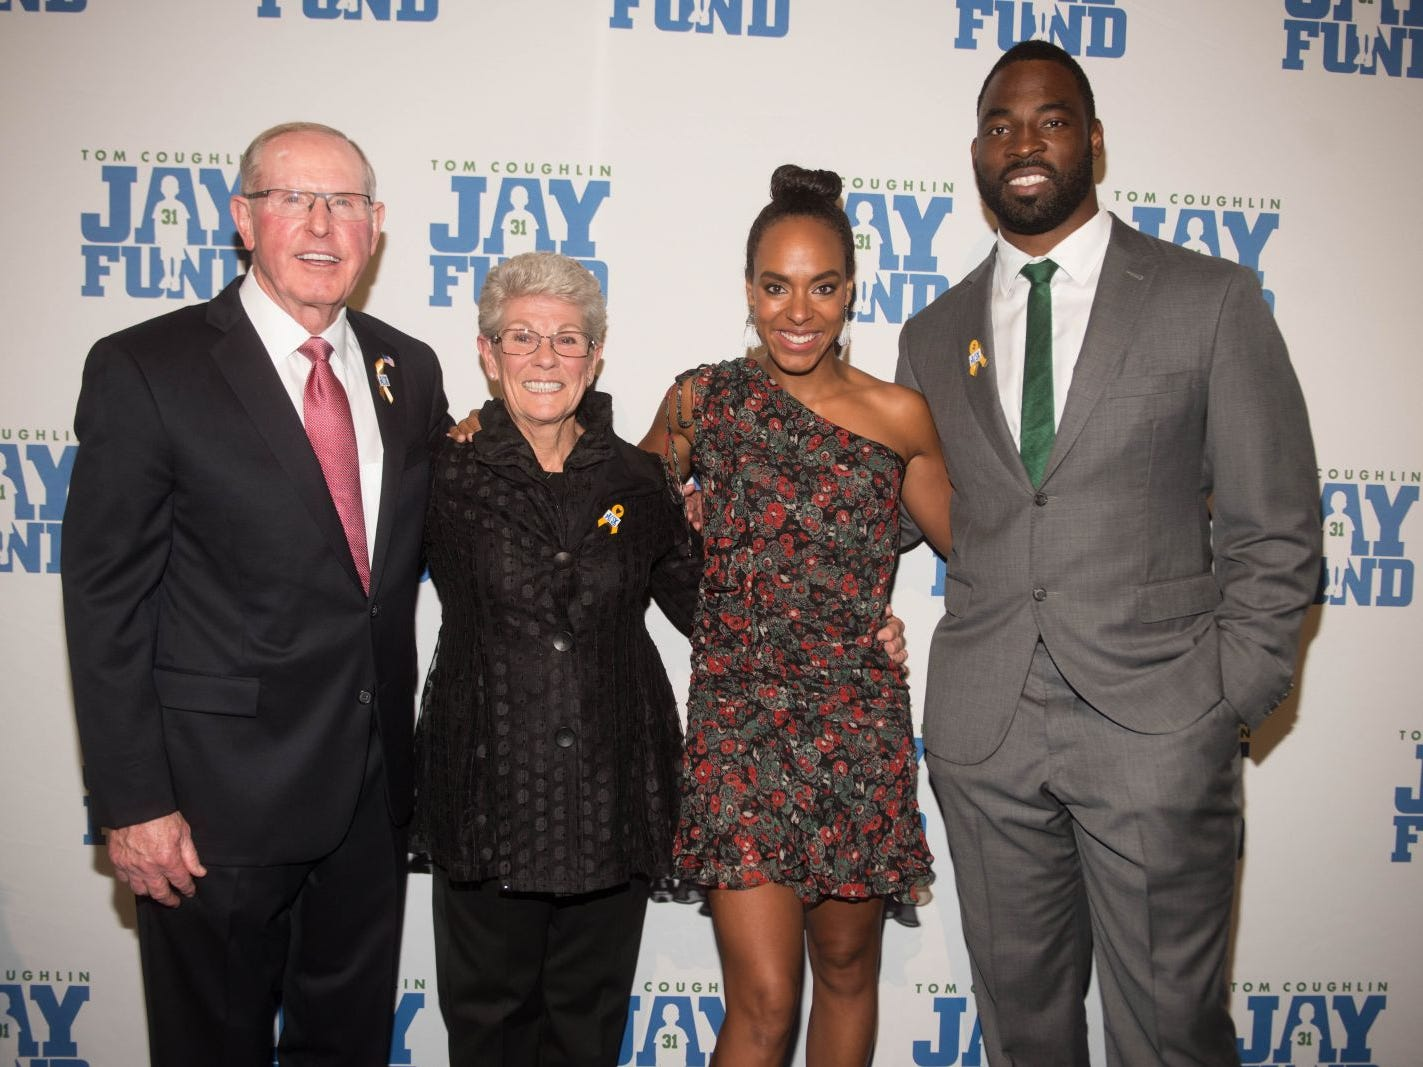 Judy Coughlin, Tom Coughlin, Lauran Williamson Tuck and Justin Tuck. The 14th annual Jay Fund Champions for Children Gala was held at Cipriani 42nd Street. 09/21/2018